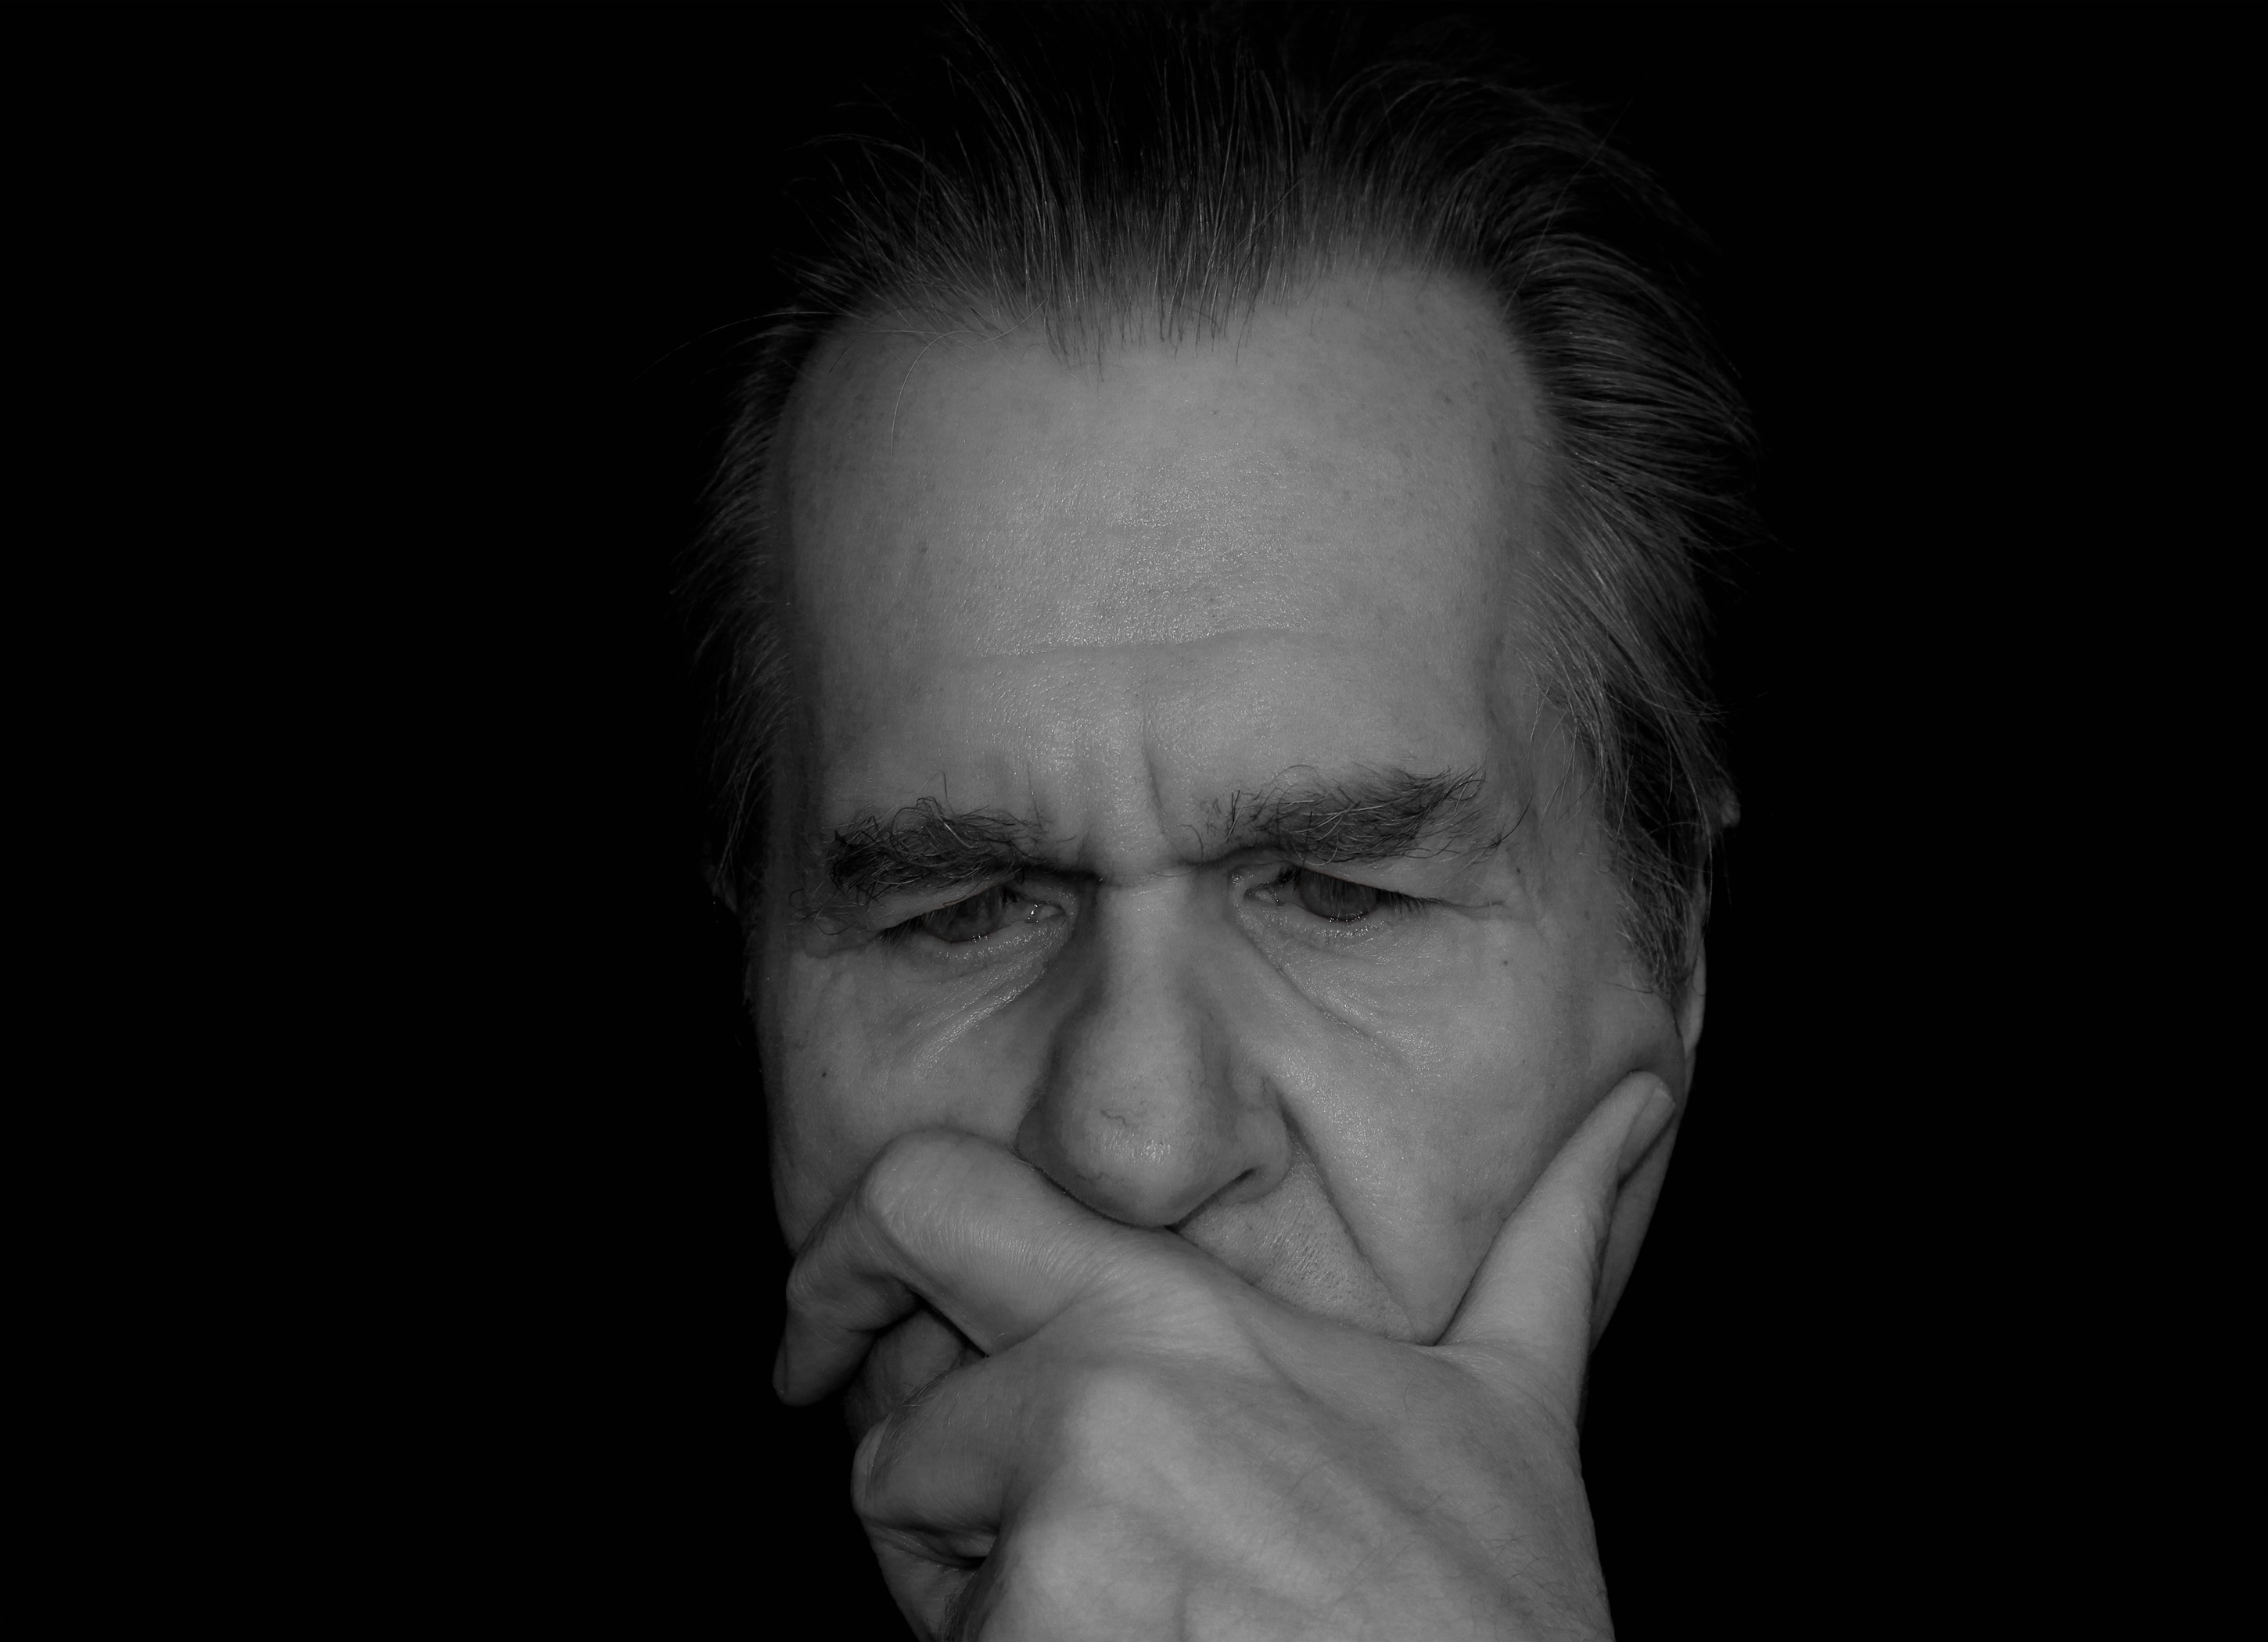 Man S Face Greyscale Picture Free Stock Photo